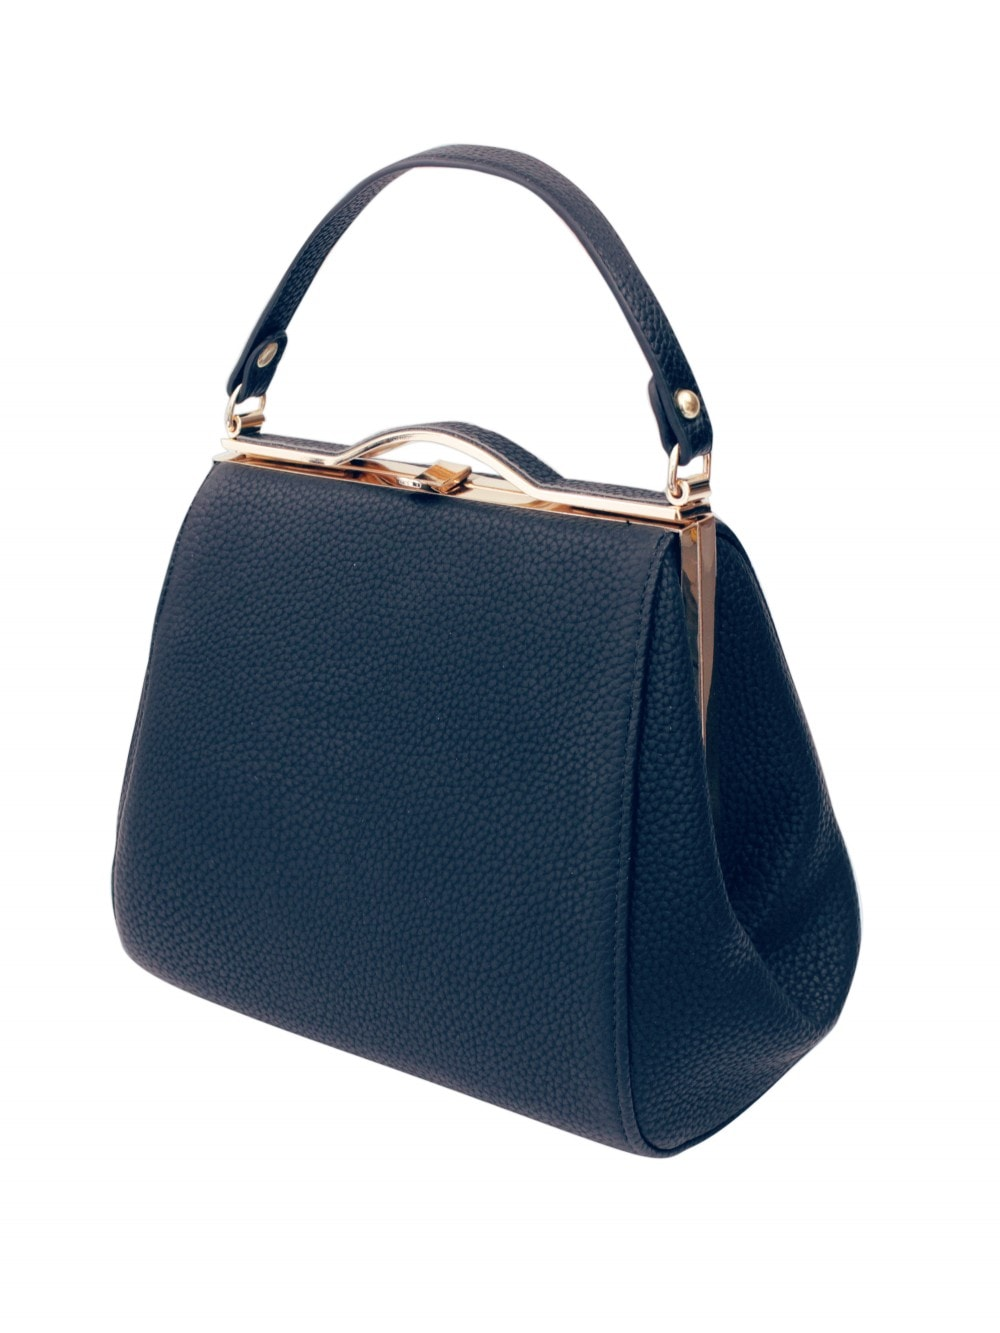 45803c973a67 Pin-up Handbag - Navy Croc from Vivien of Holloway